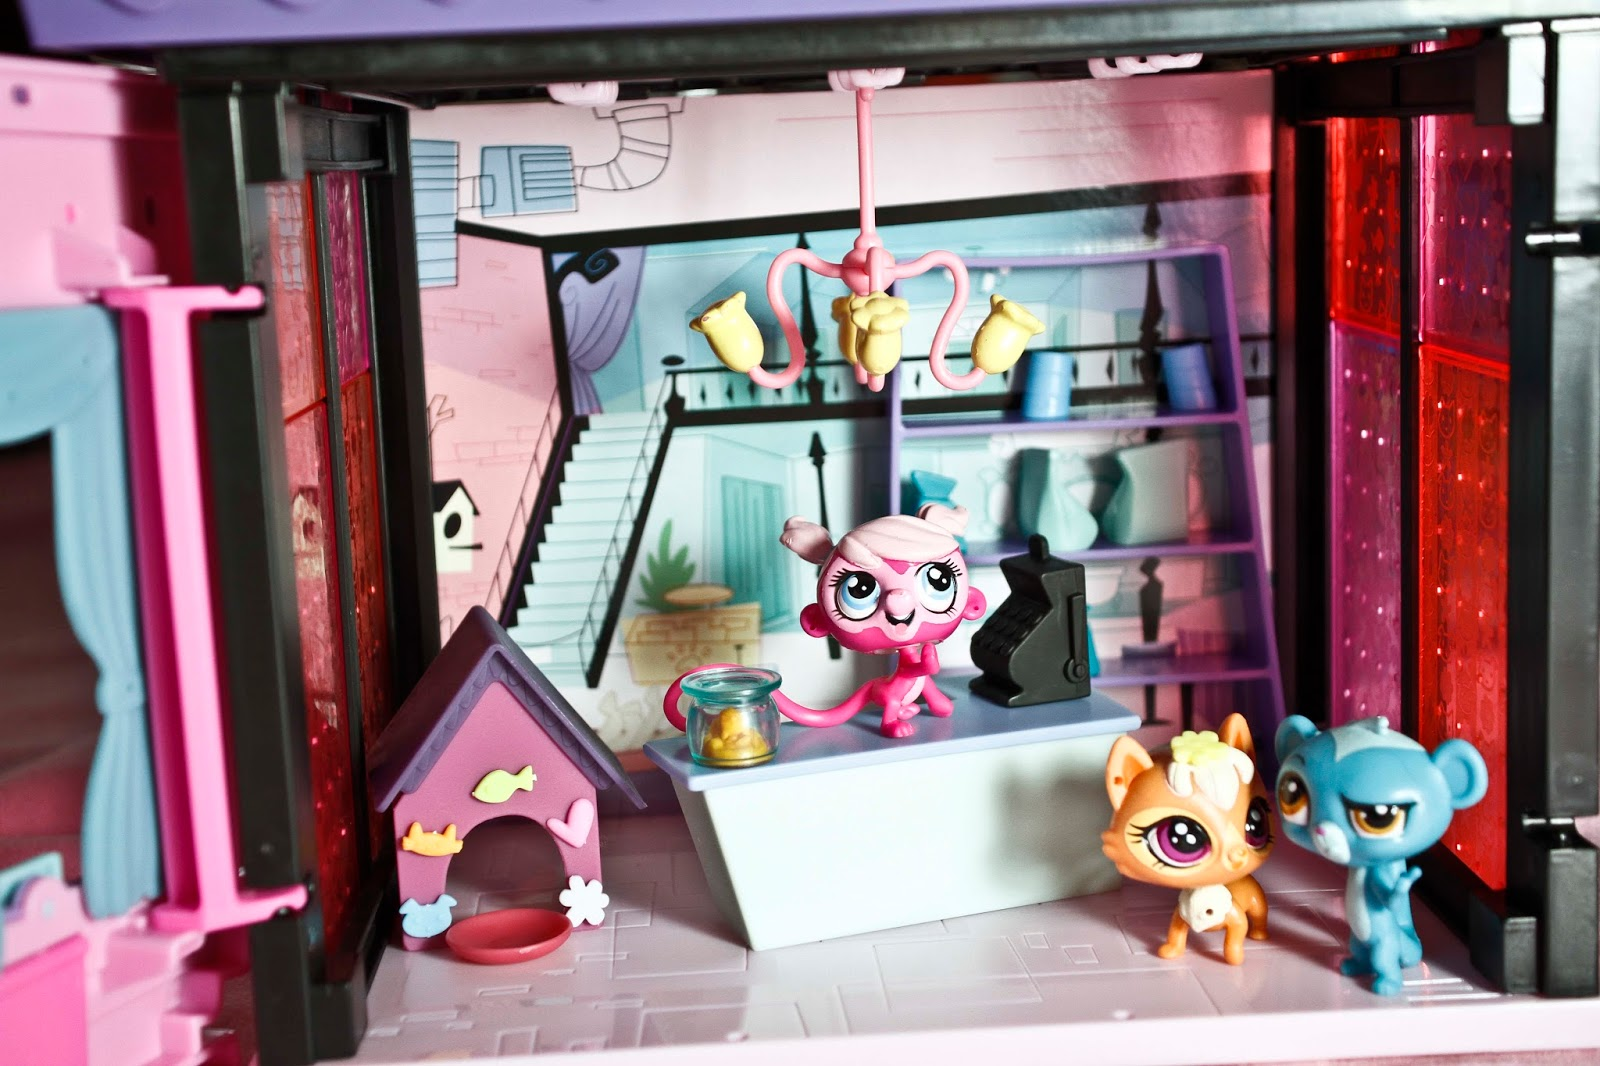 a set up showing some playgoing that can be done with the littlest pet shop style set